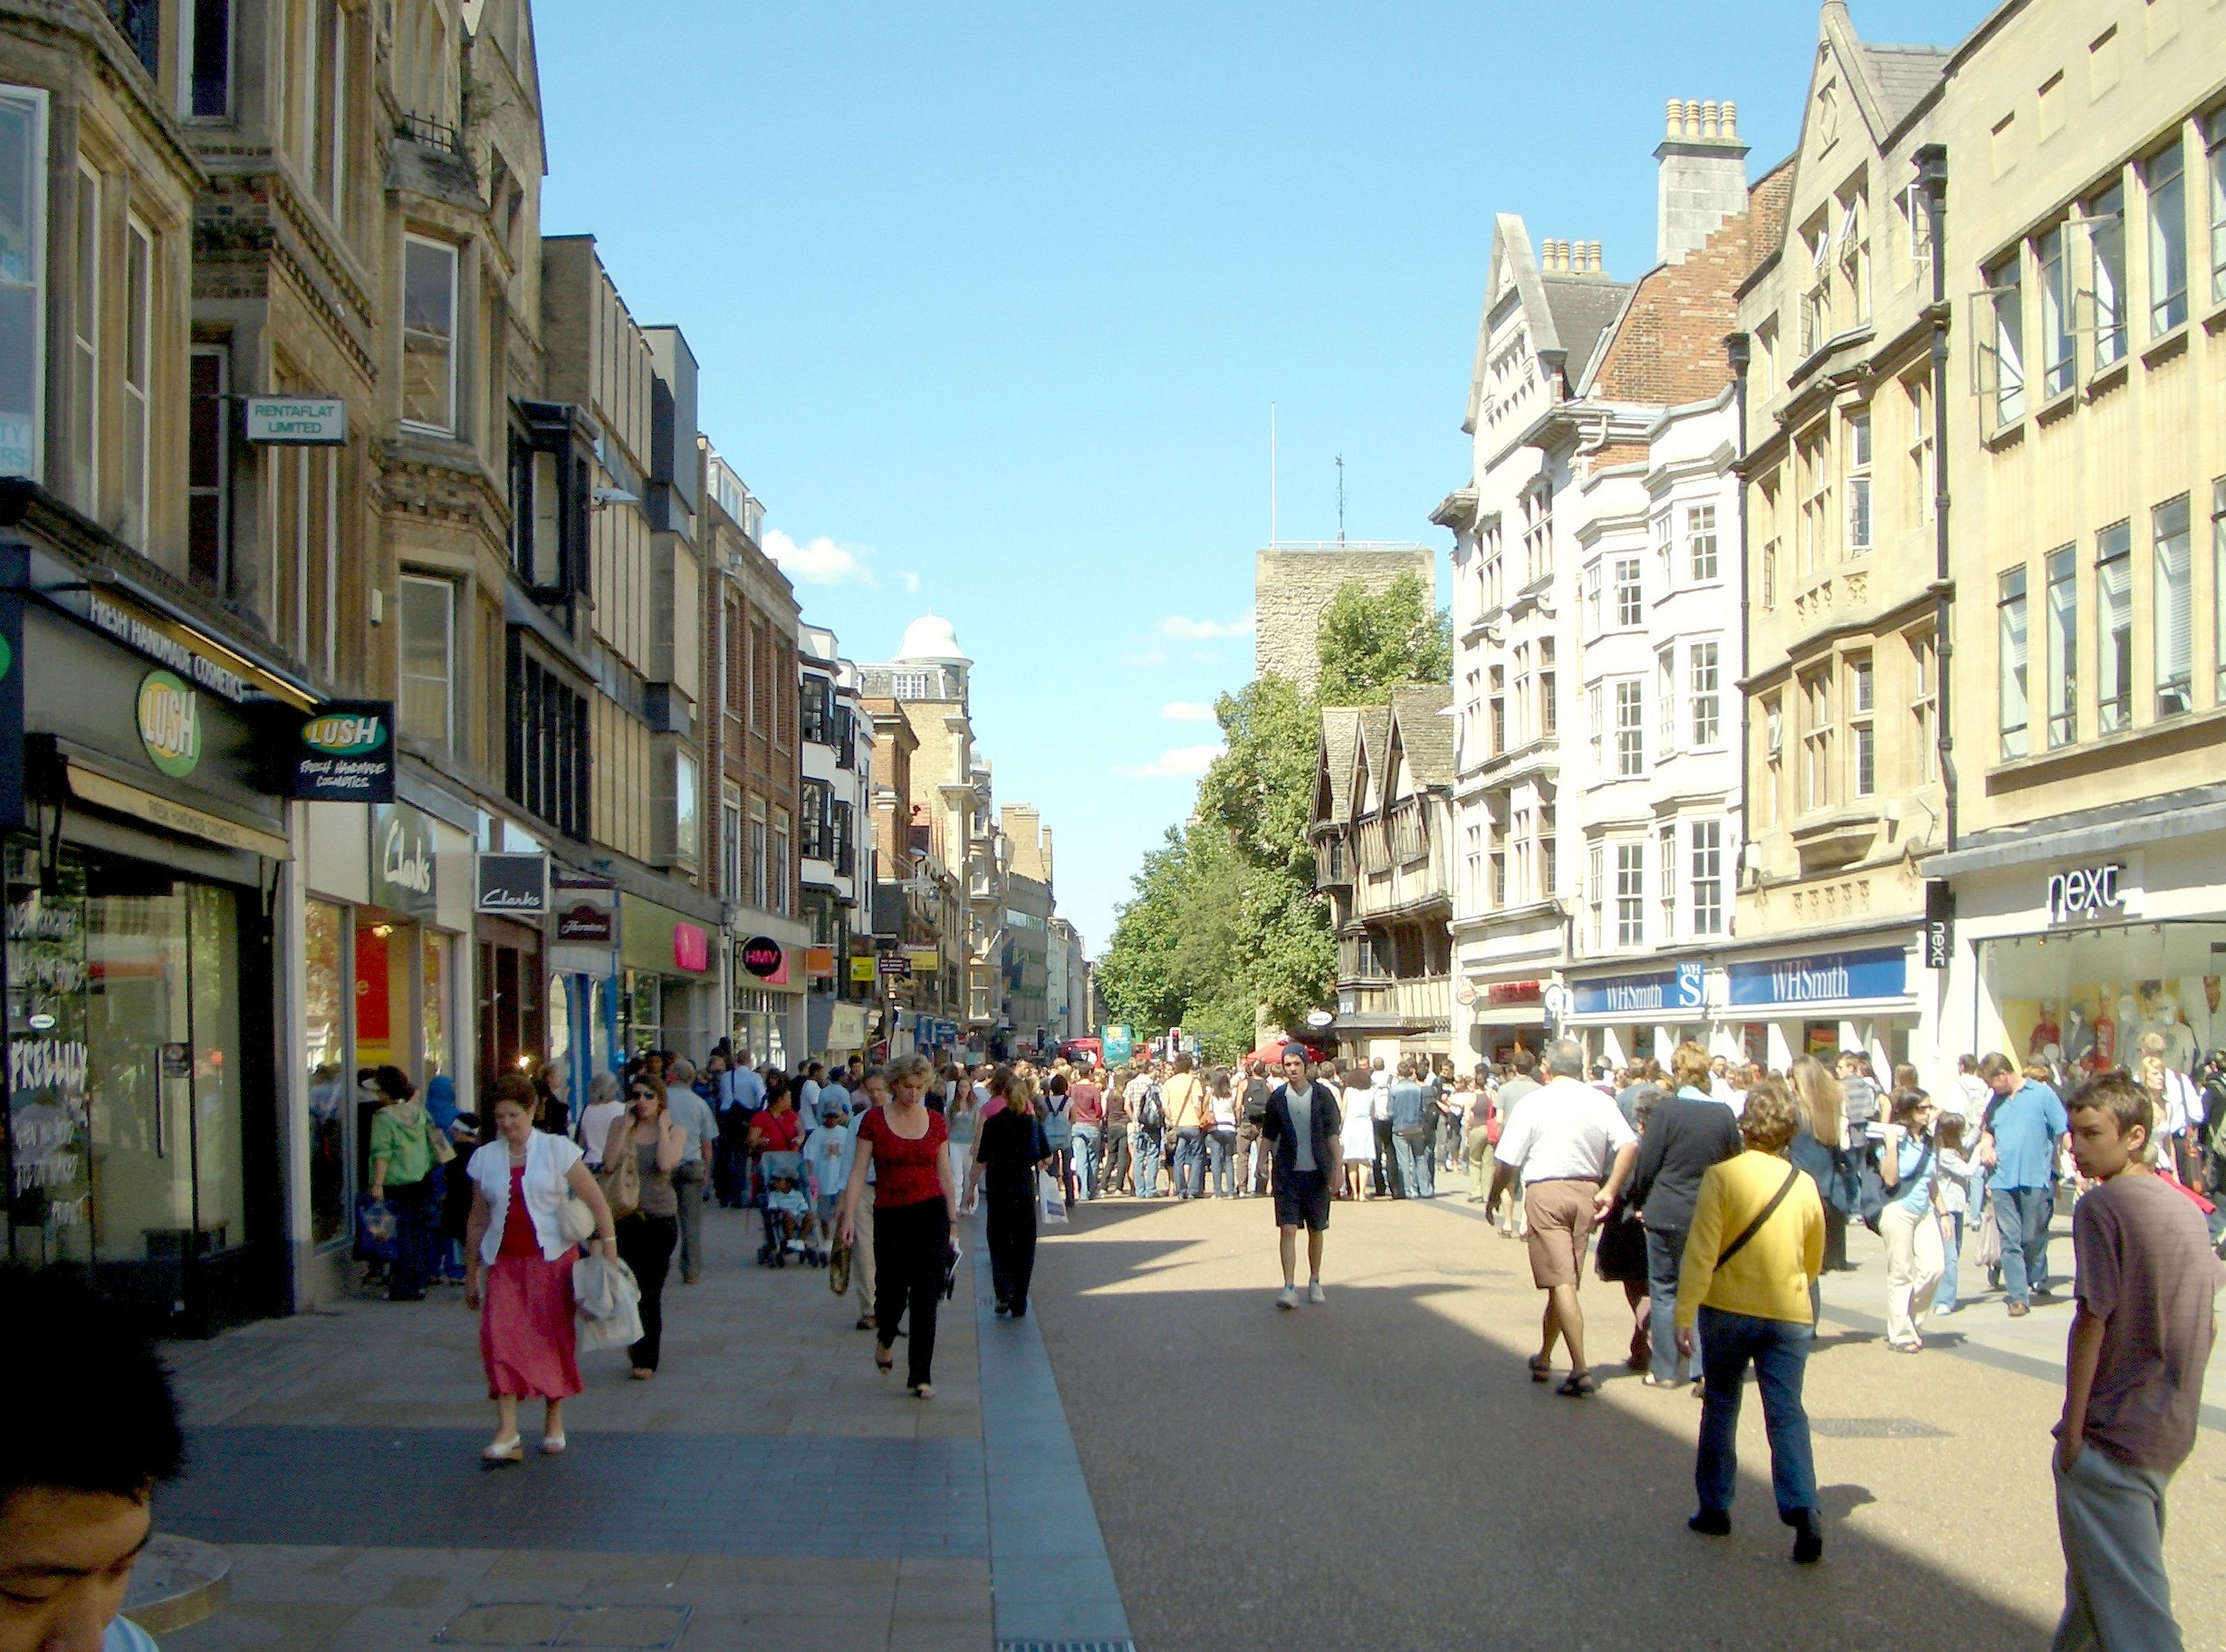 Cornmarket Street, Oxford: a view of what will be your new home town after moving from Edinburgh to Oxford.